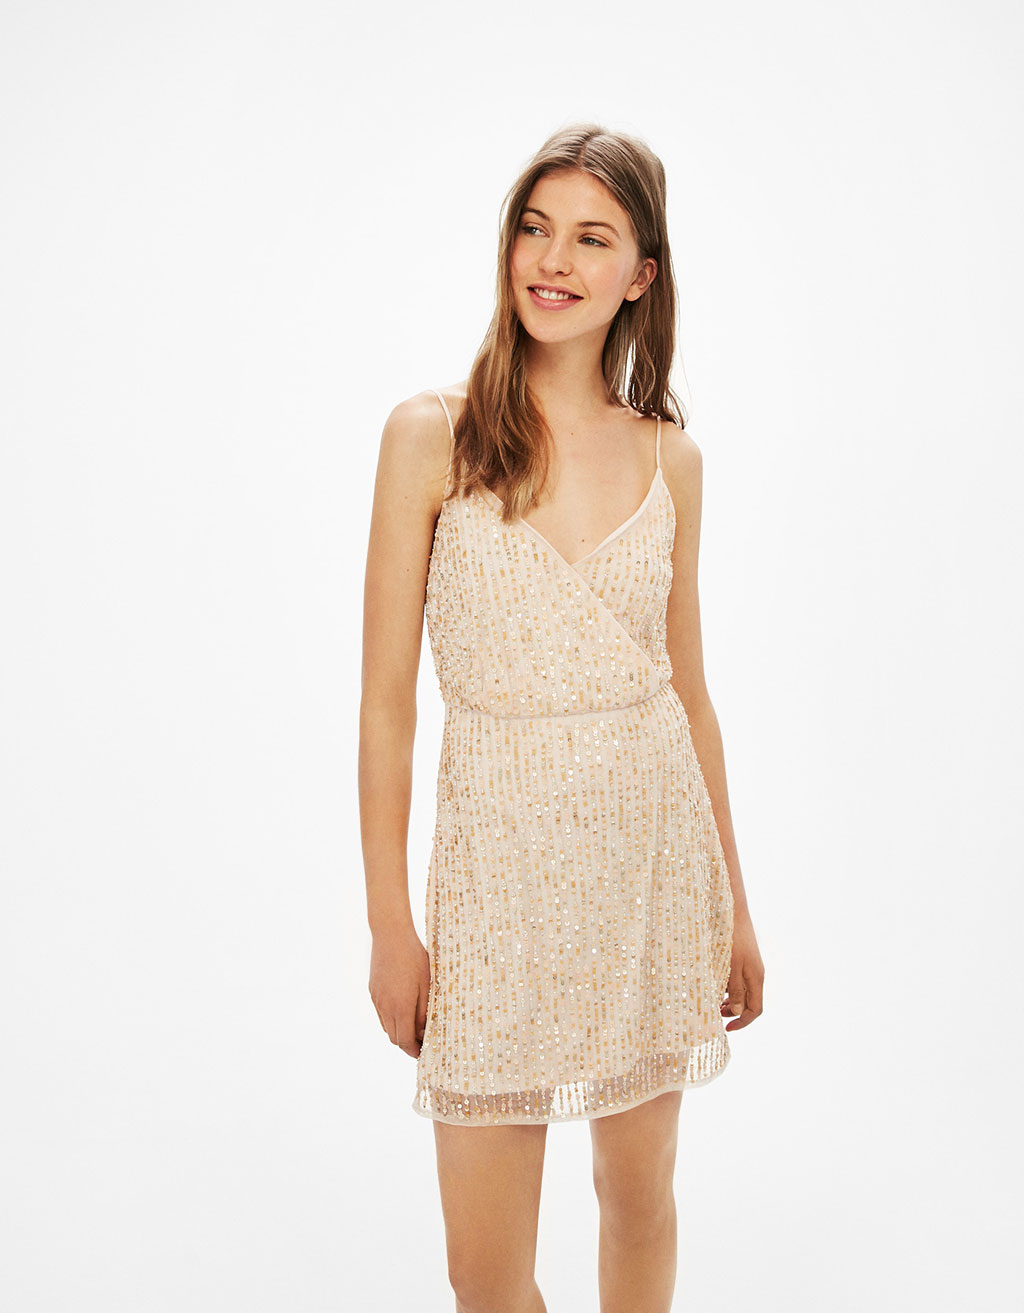 Strappy sequinned dress